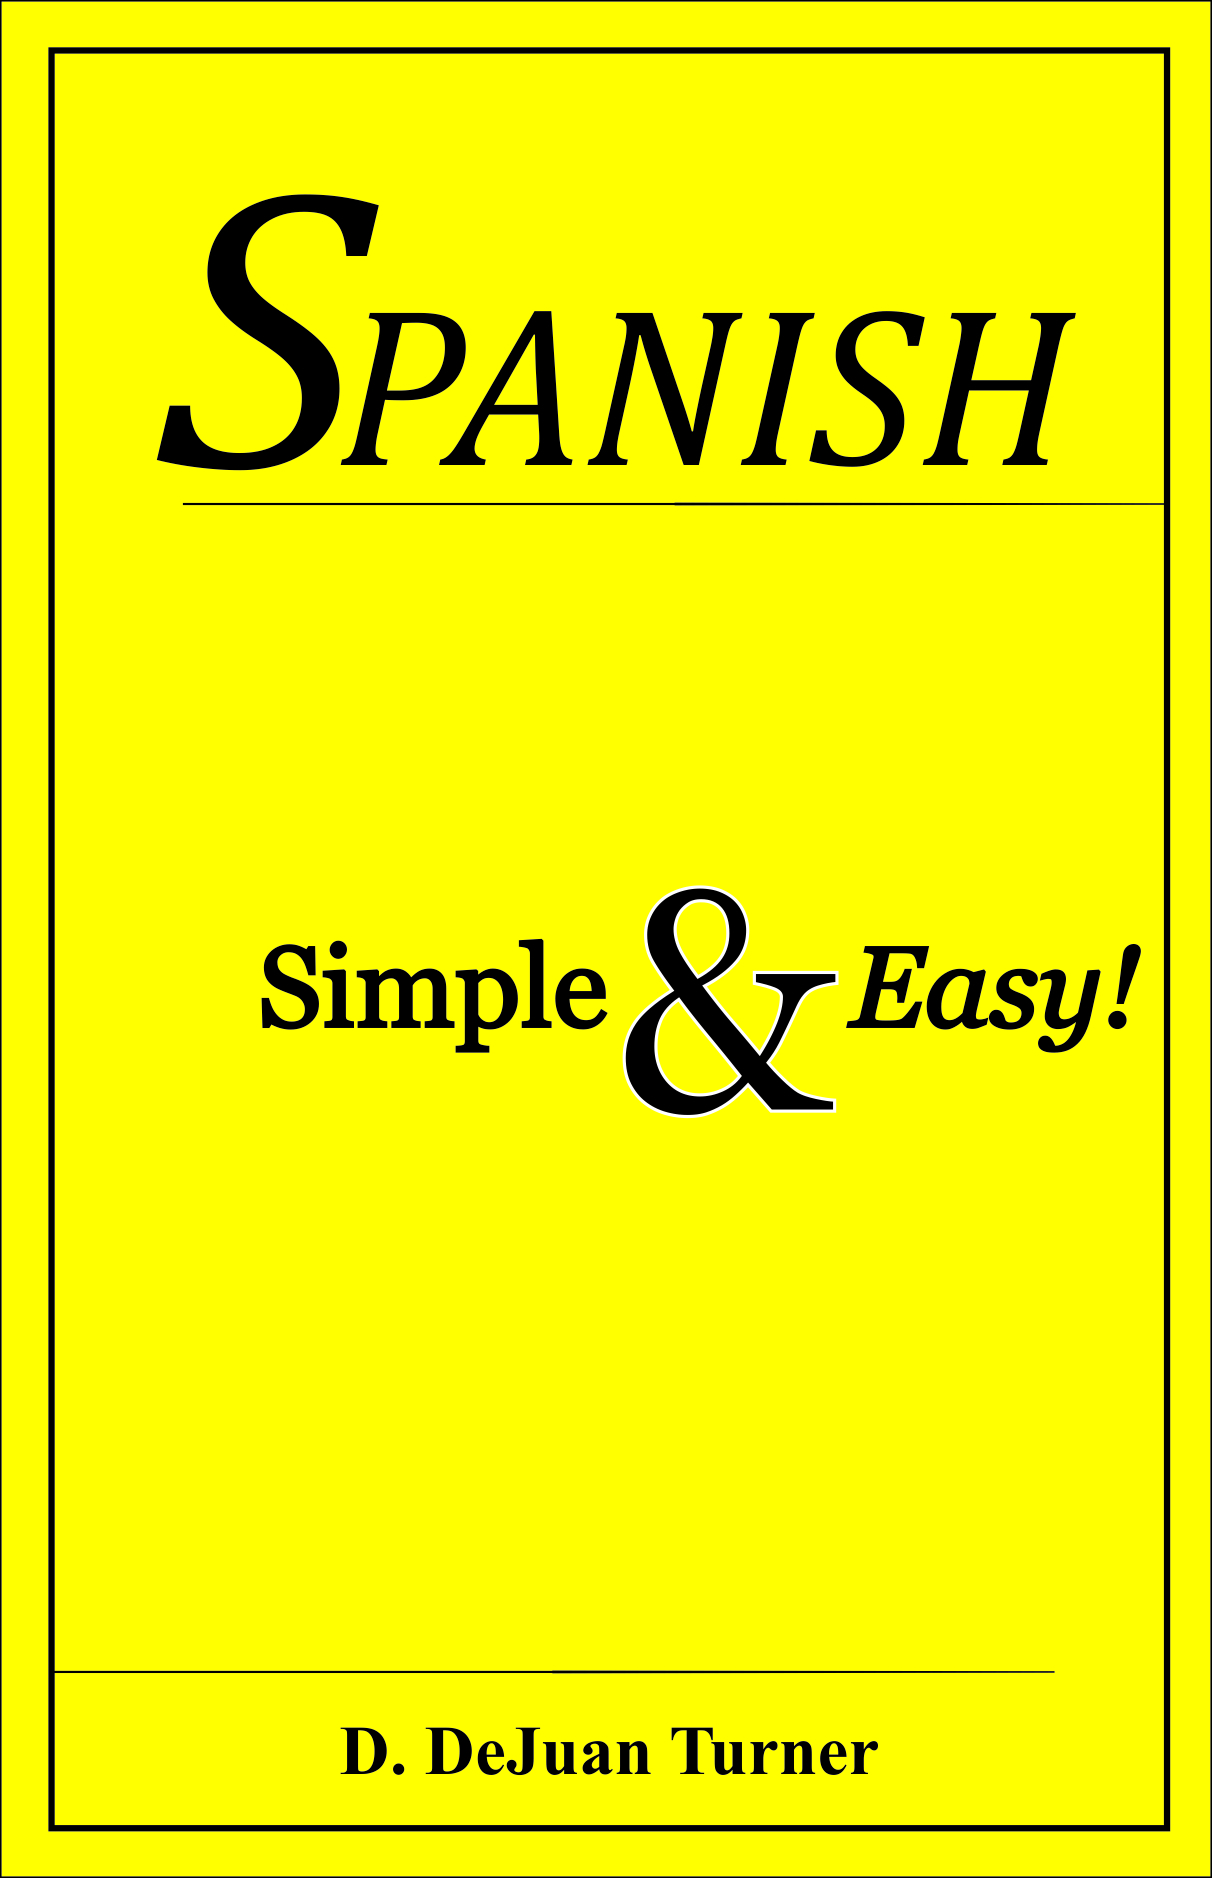 Spanish Simple & Easy! By: D. DeJuan Turner